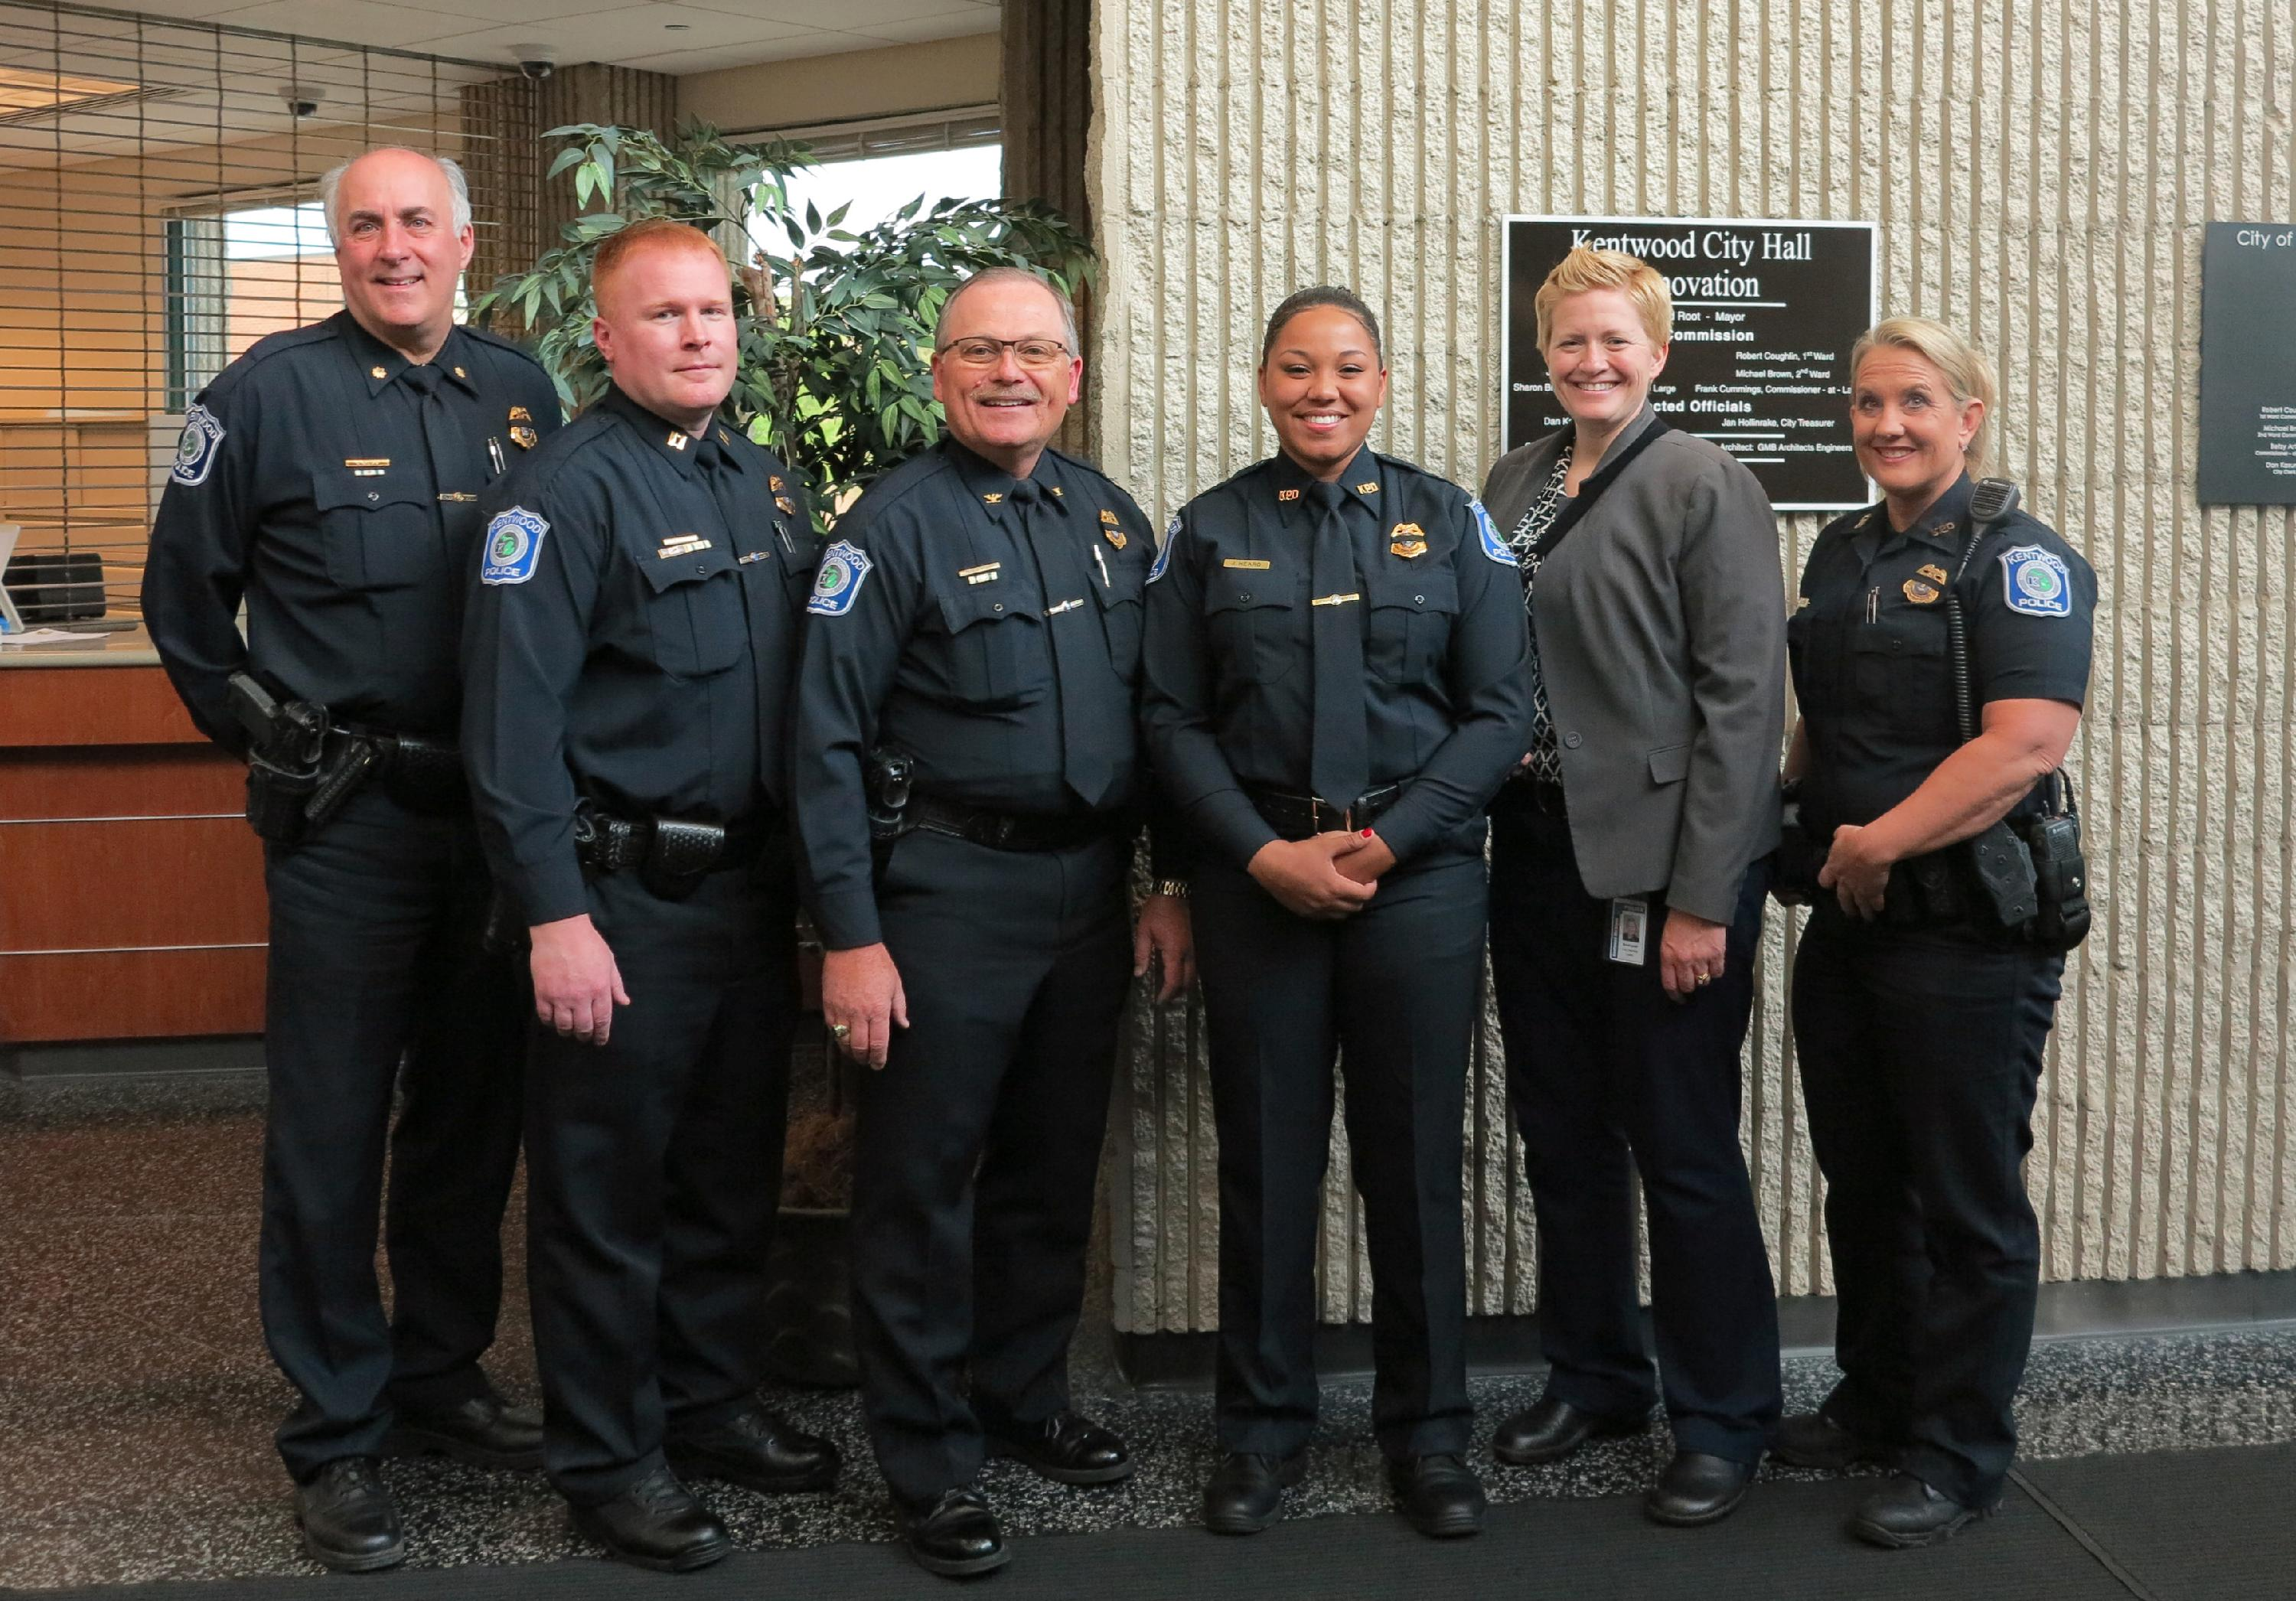 DC Roberts, Capt. Litwin, Chief Hillen, Officer Heard, Captain Morningstar and Officer Clark stand together and smile for a photo following Officer Heard's swearing in.